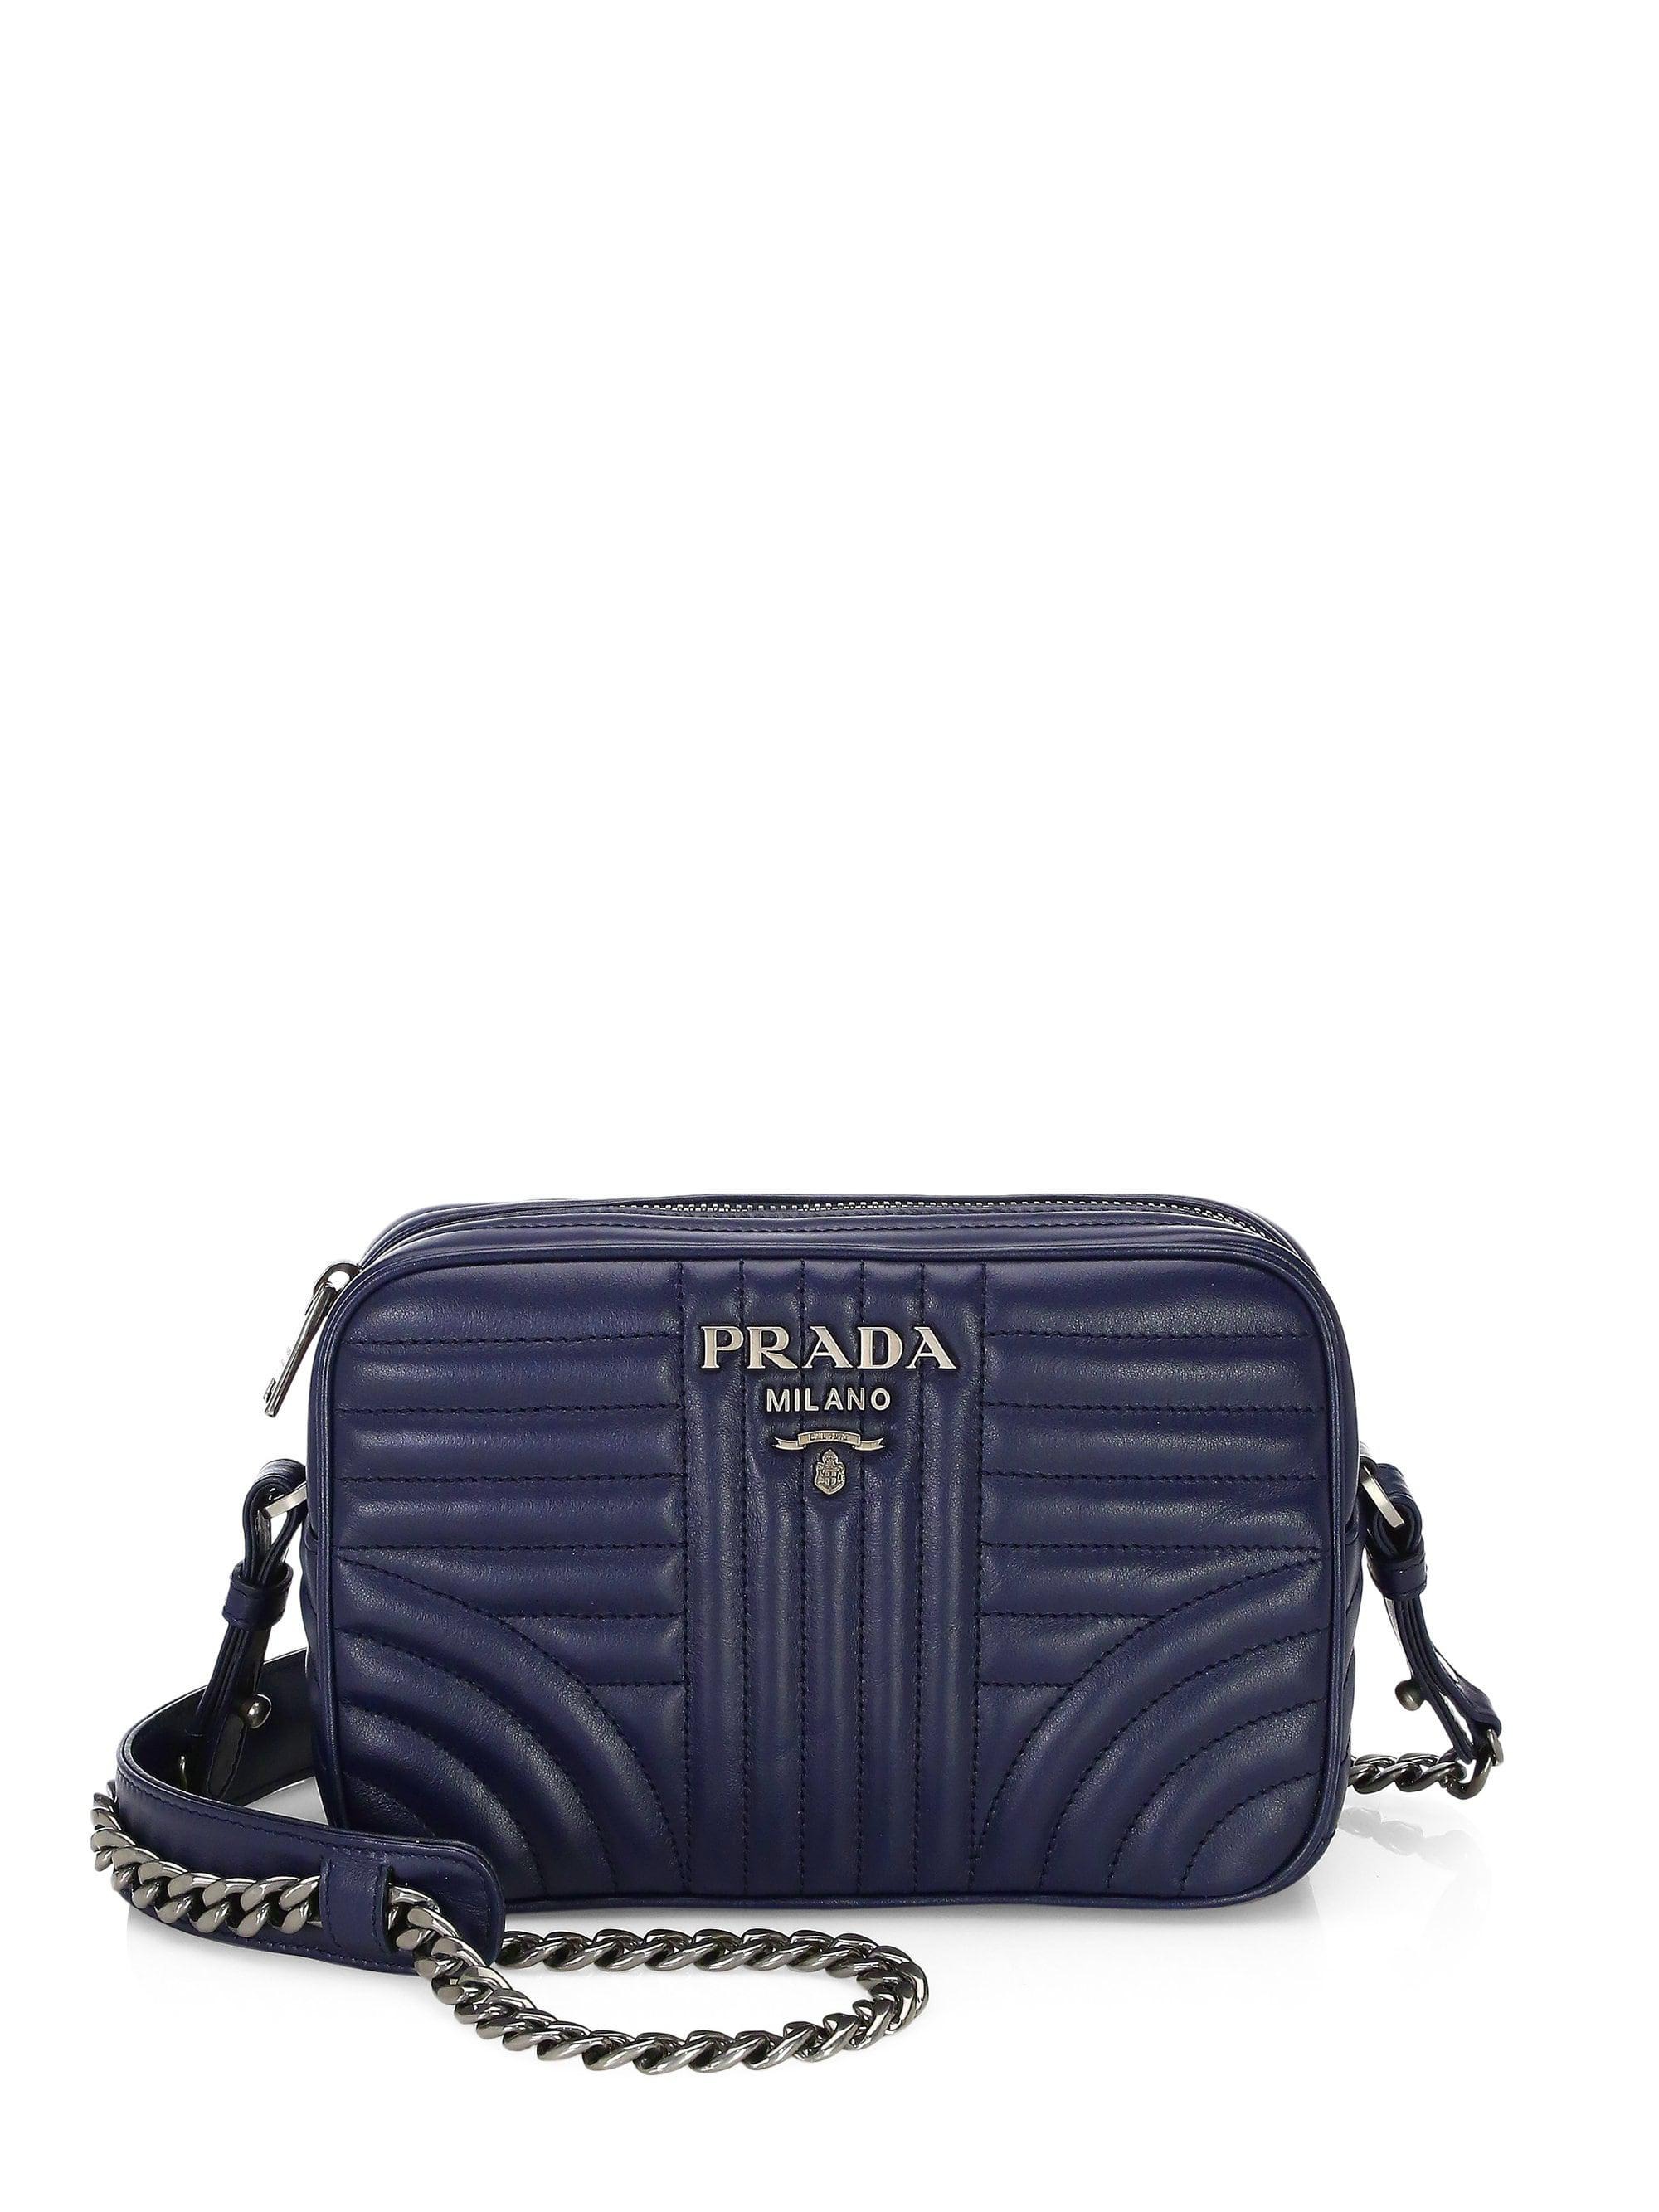 43768eaf9679 ... clearance lyst prada diagramme leather camera bag in blue 54a25 607a2